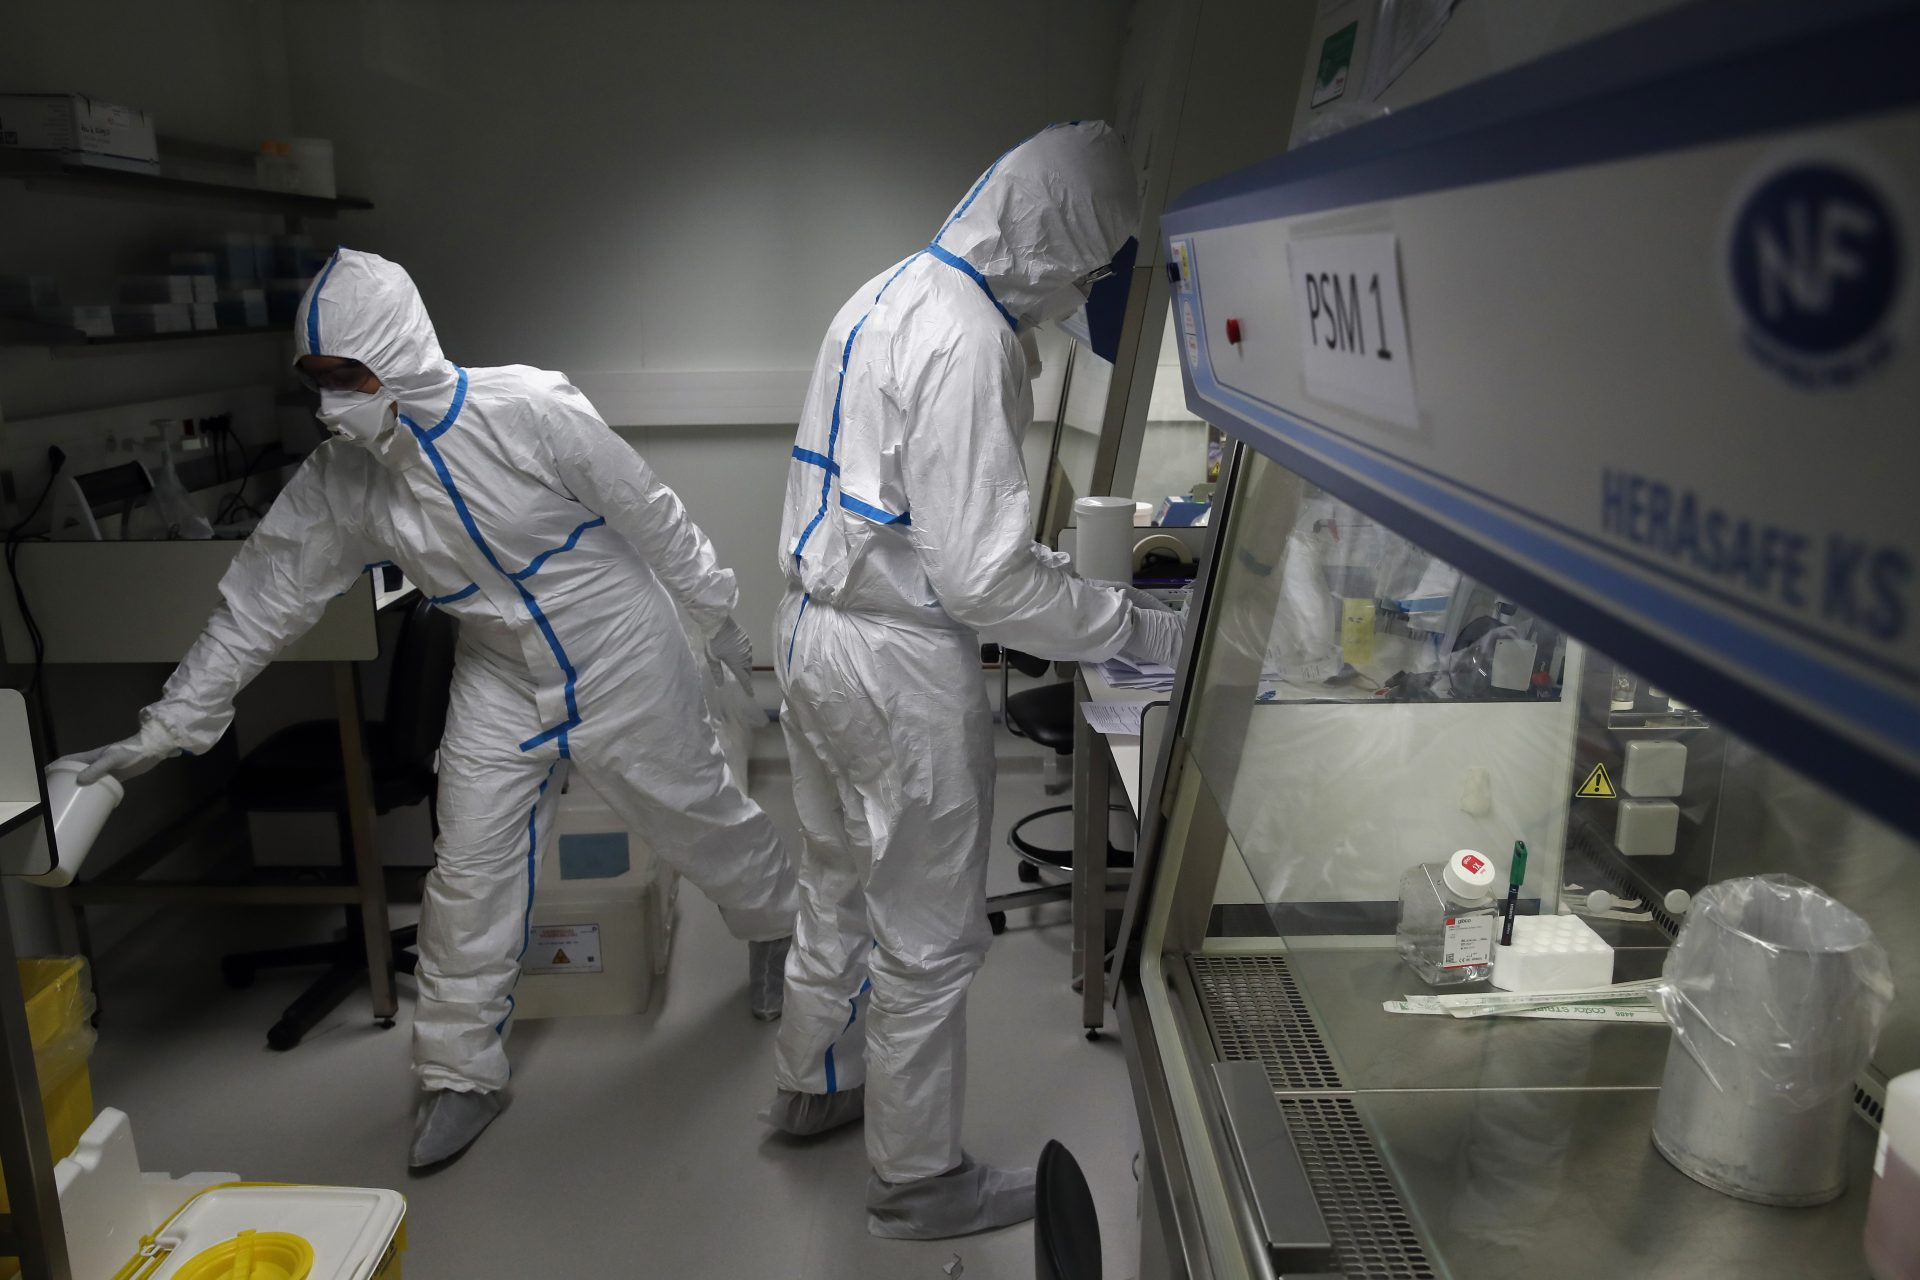 French lab scientists in hazmat gear inserting liquid in test tube manipulate potentially infected patient samples at Pasteur Institute in Paris, Thursday, Feb. 6, 2020. Scientists at the Pasteur Institute developed and shared a quick test for the new virus that is spreading worldwide, and are using genetic information about the coronavirus to develop a potential vaccine and treatments.